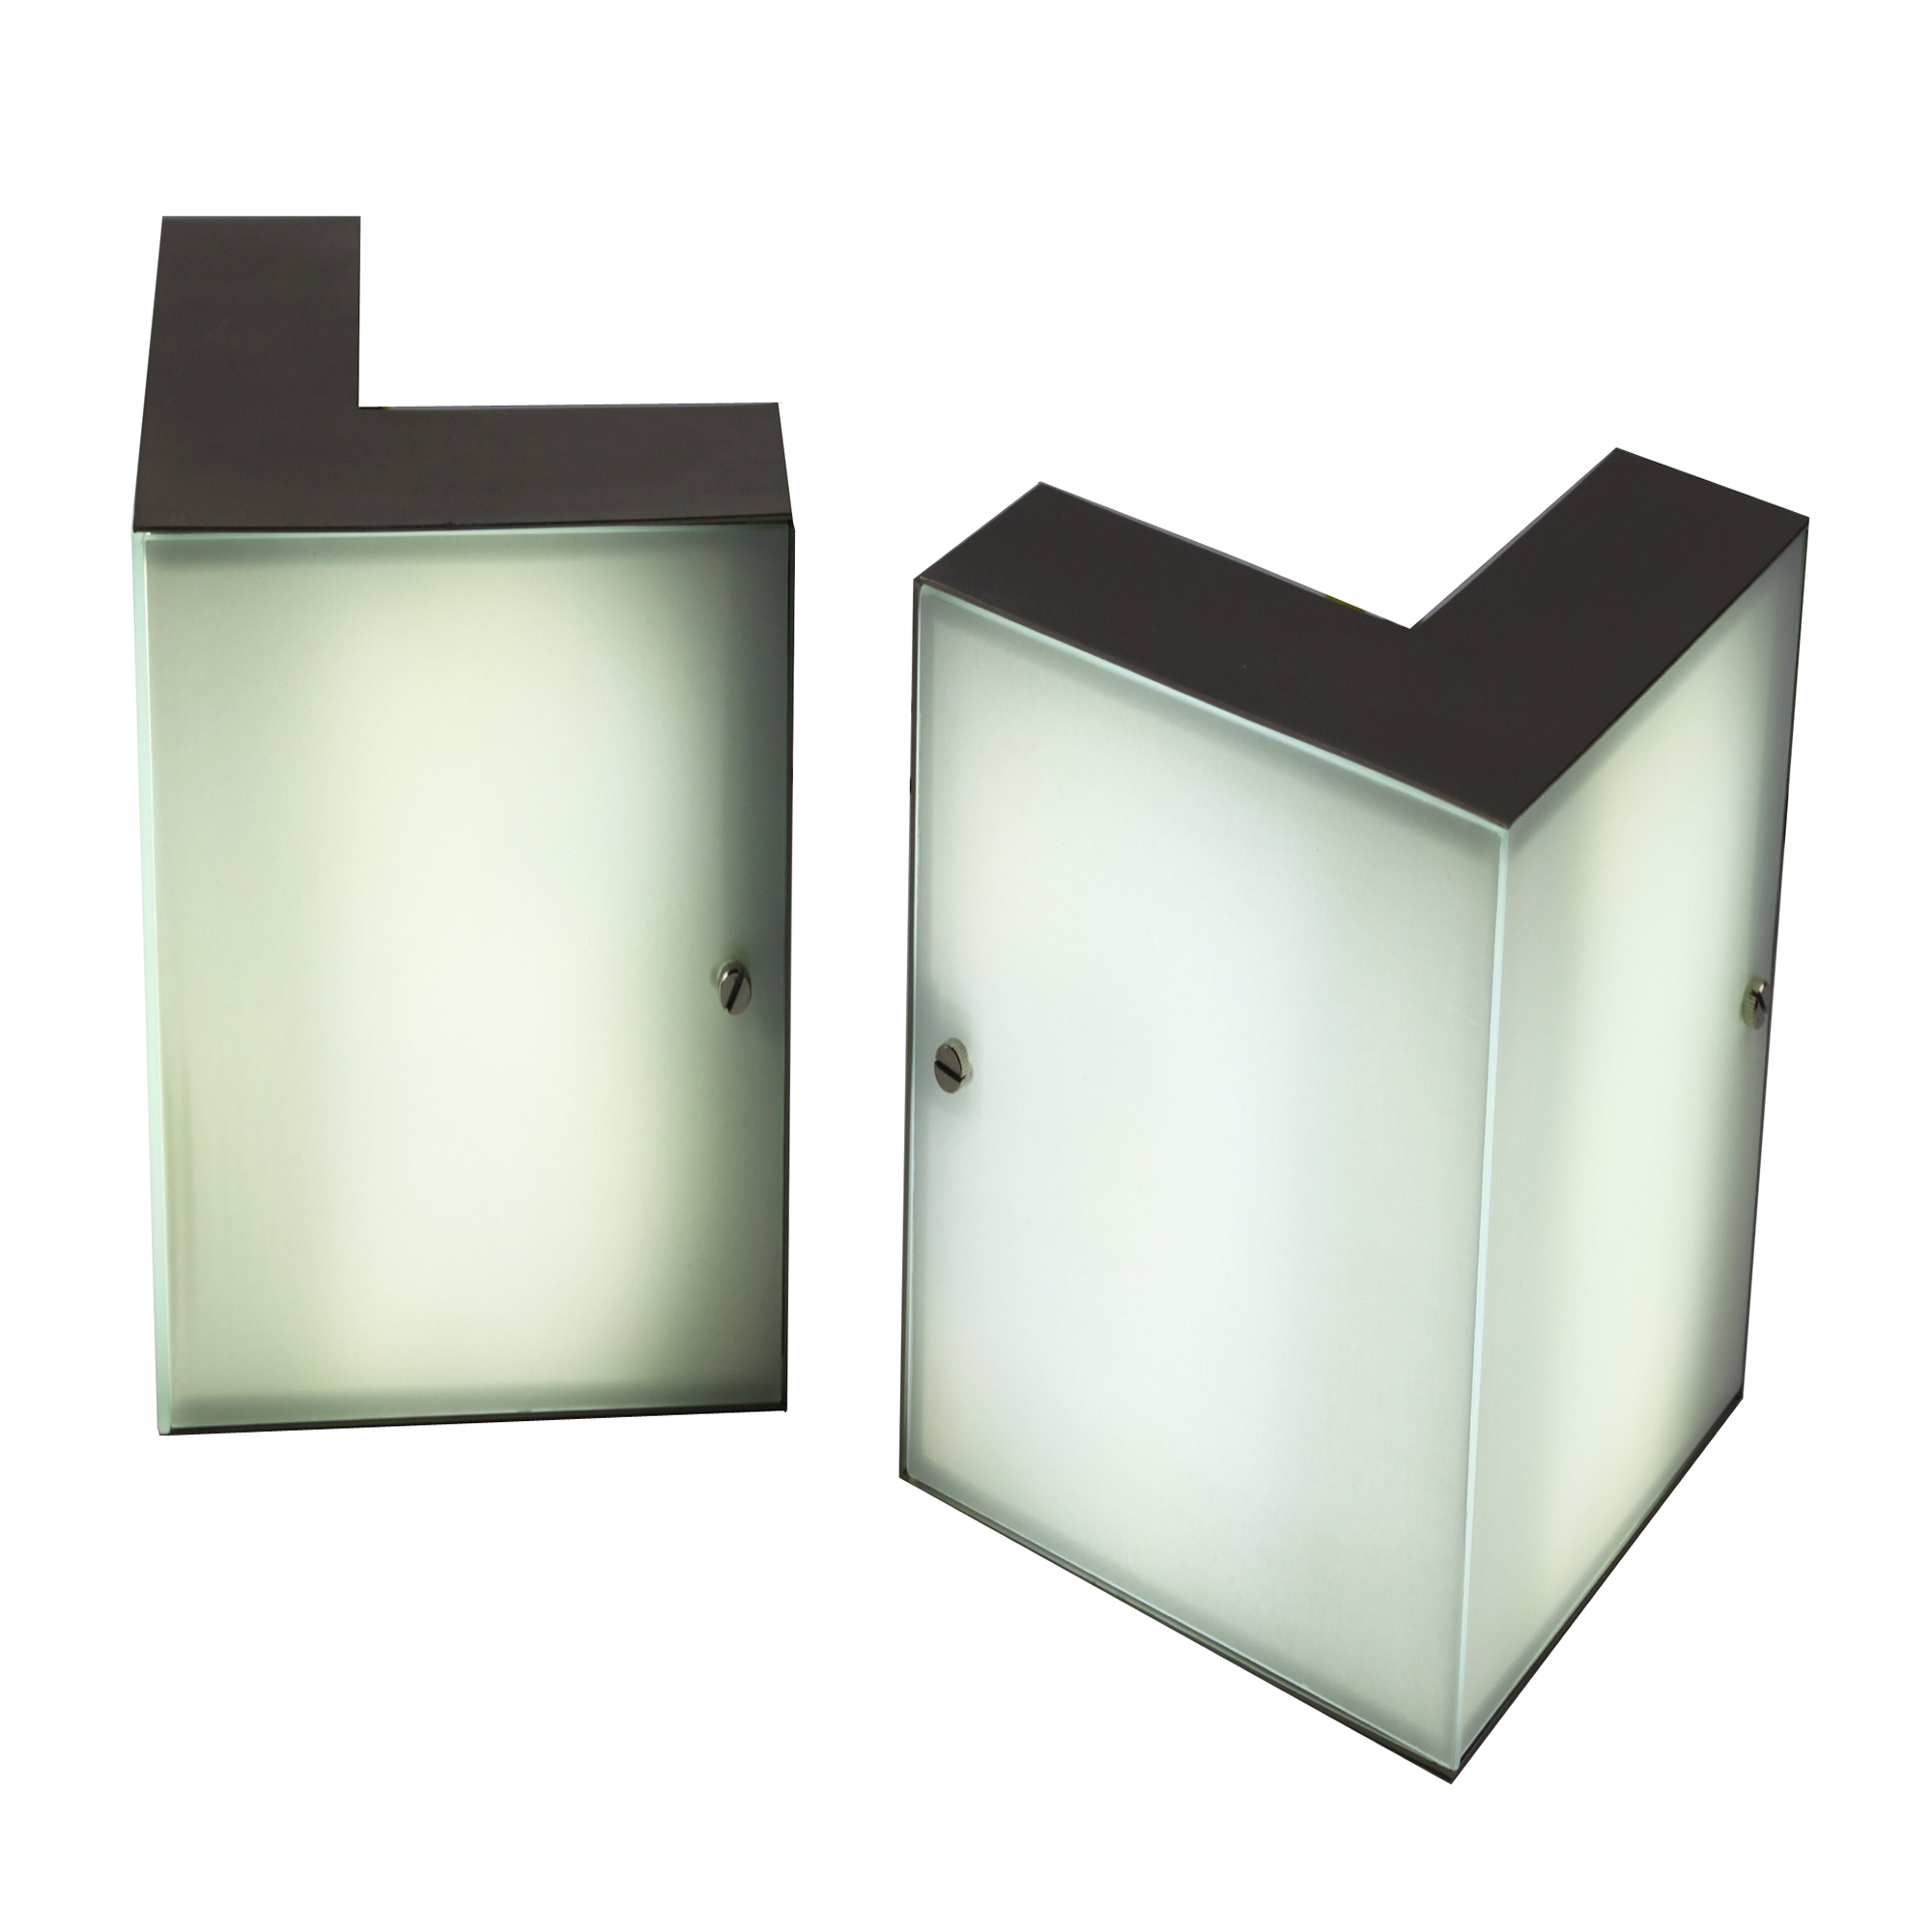 Corner Wall Mount Lamp : PROJECT LIGHT OHR-02 LED WALL MOUNT CORNER LIGHT MODERN FIXTURE eBay